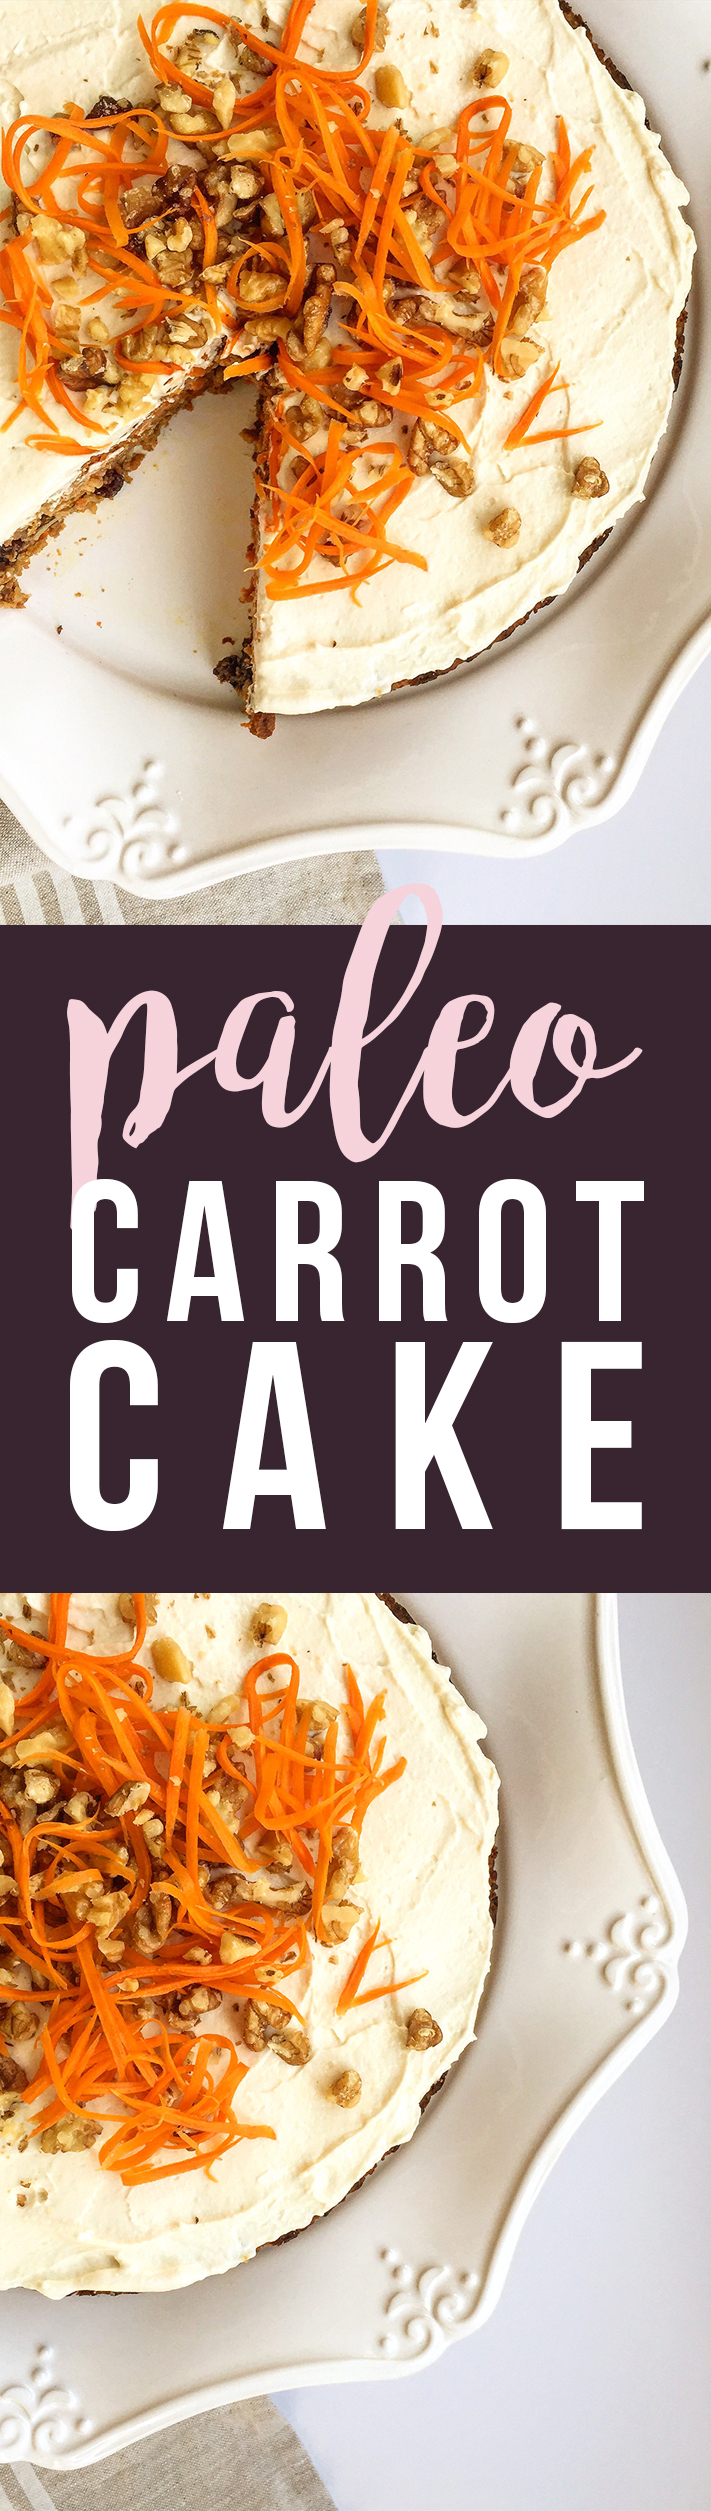 This Paleo Carrot Cake is grain-free, dairy-free, fruit-sweetened... healthy and tasty. :) Fresh Planet Flavor